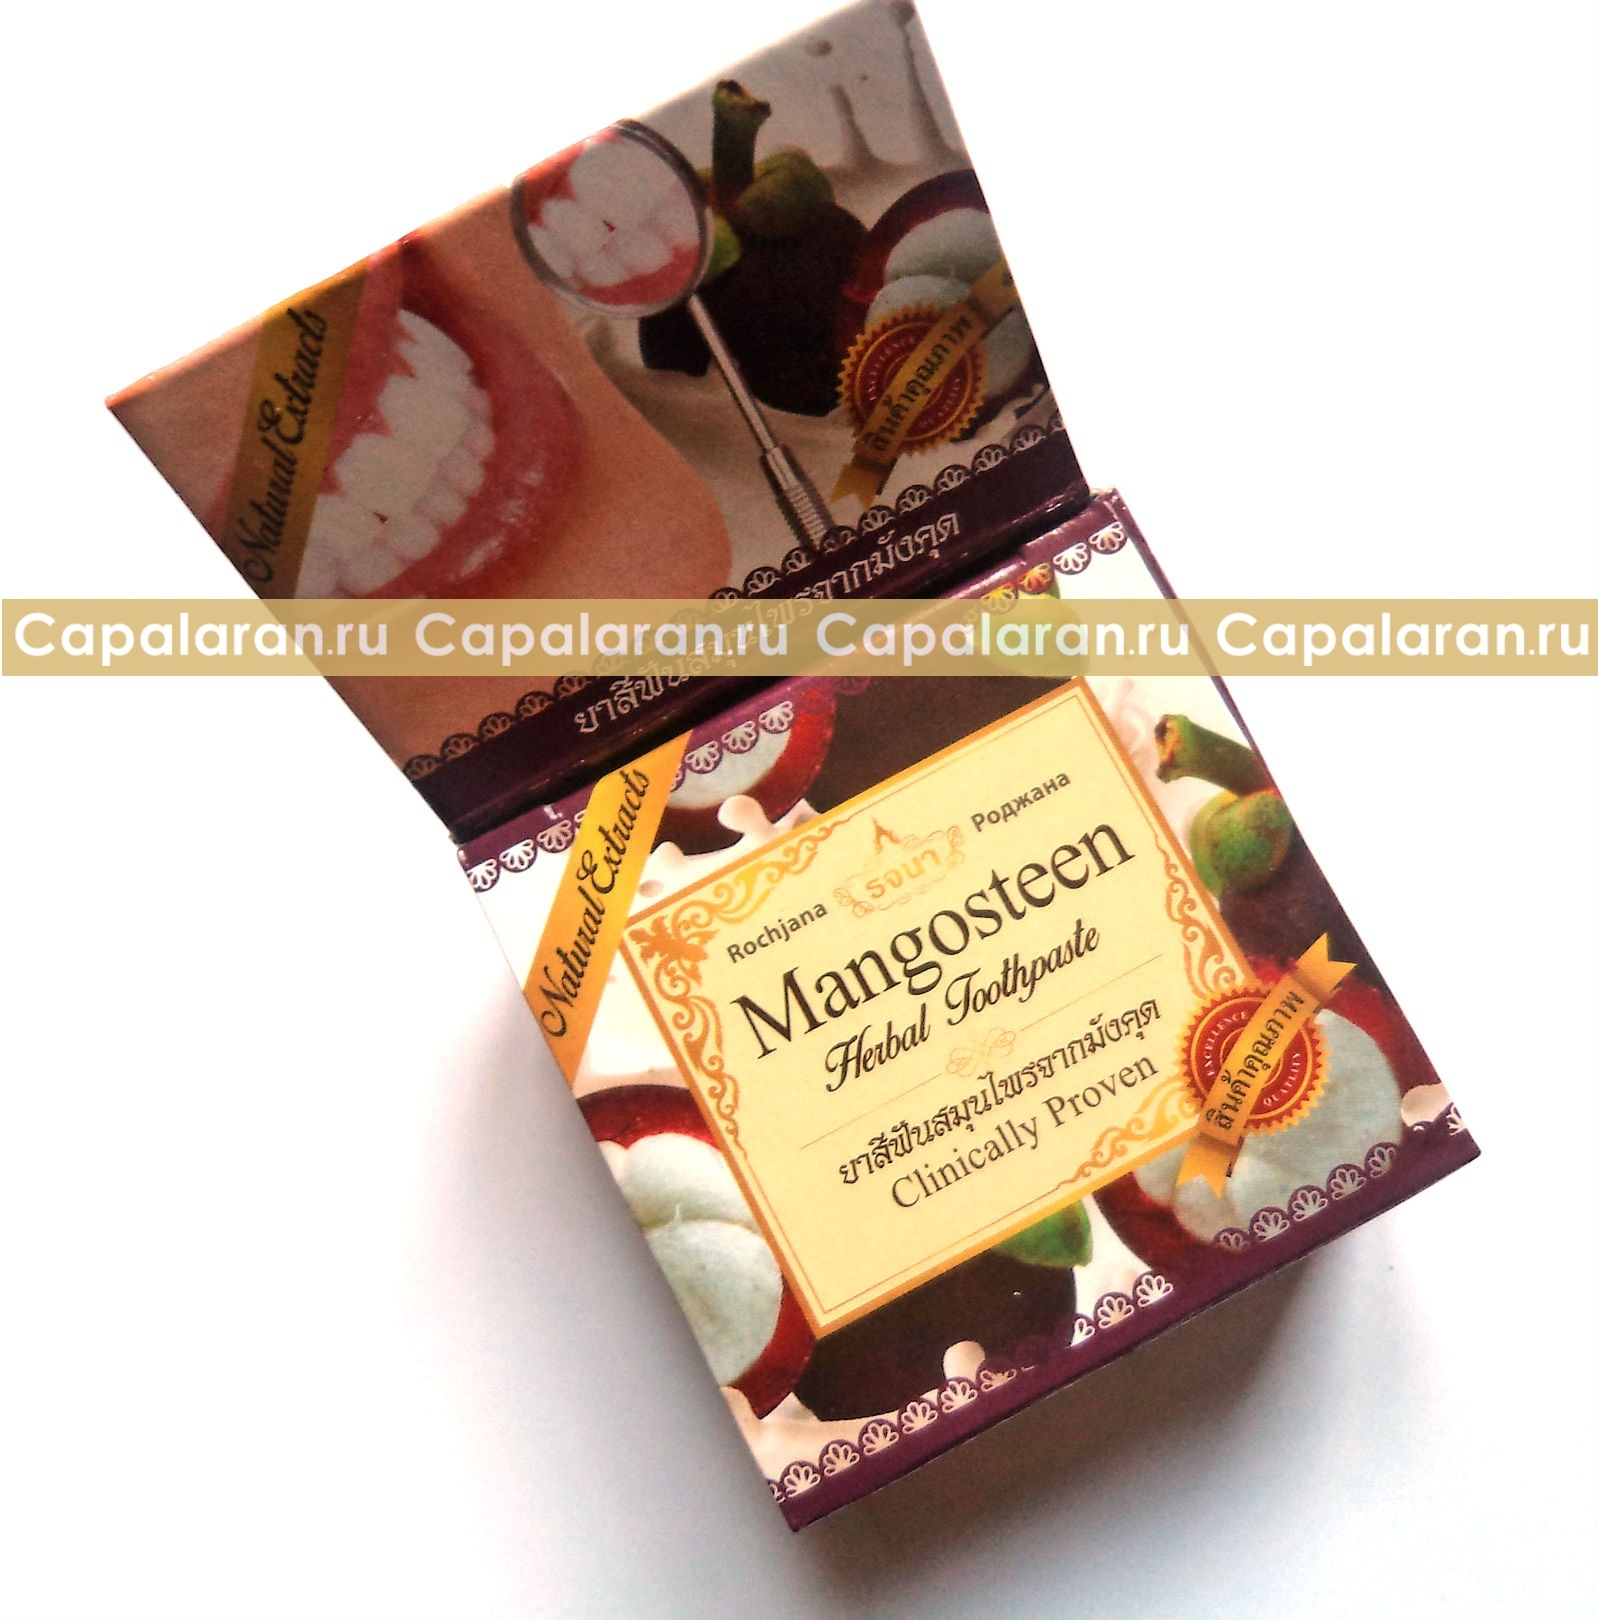 Паста зубная Herbal Clove & Mangosteen (Мангостин), (25 гр)